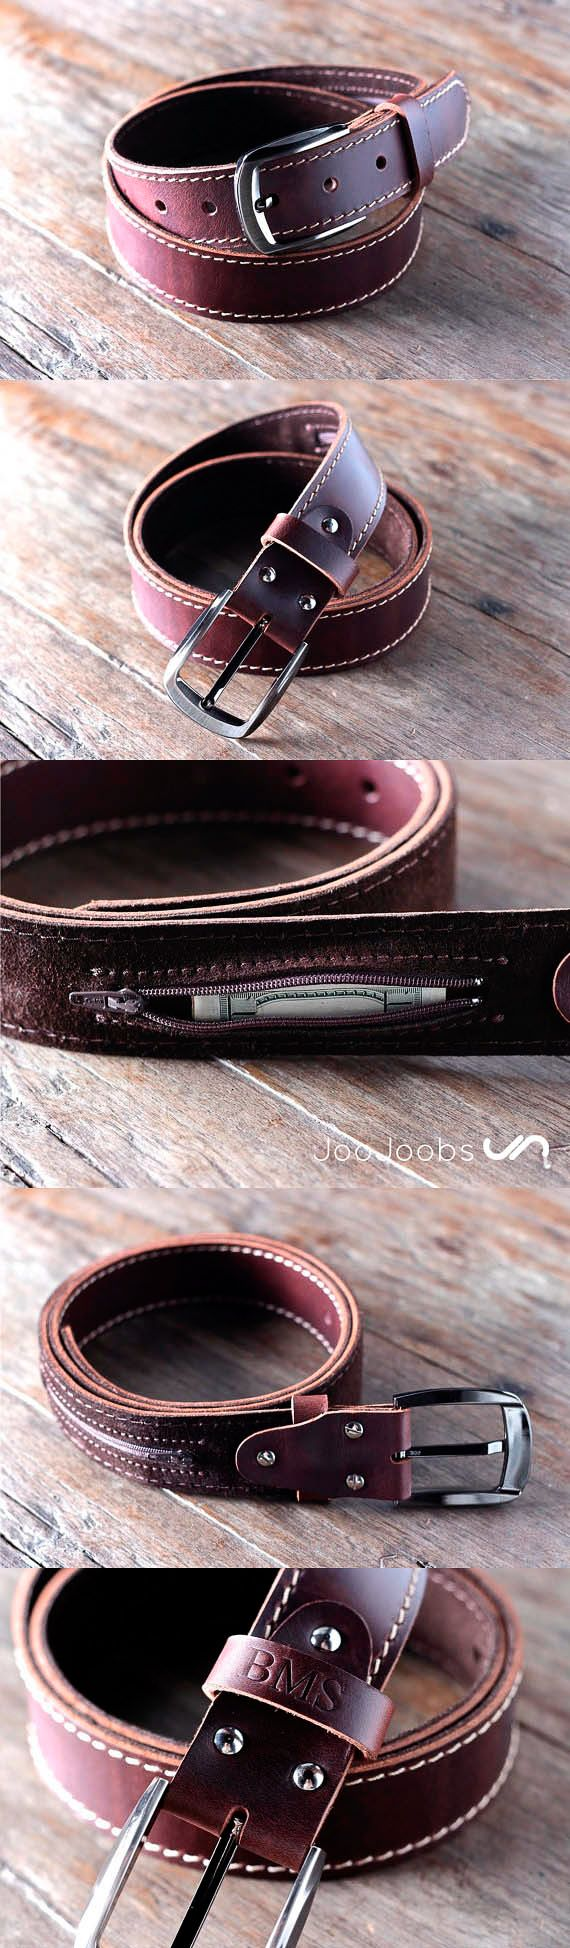 Handmade Mens Leather Belt by JooJoobs This belt has a secret, hidden pocket sewn into the inside lining. The belt is handmade and will last a lifetime. #rugged #rustic #handmade